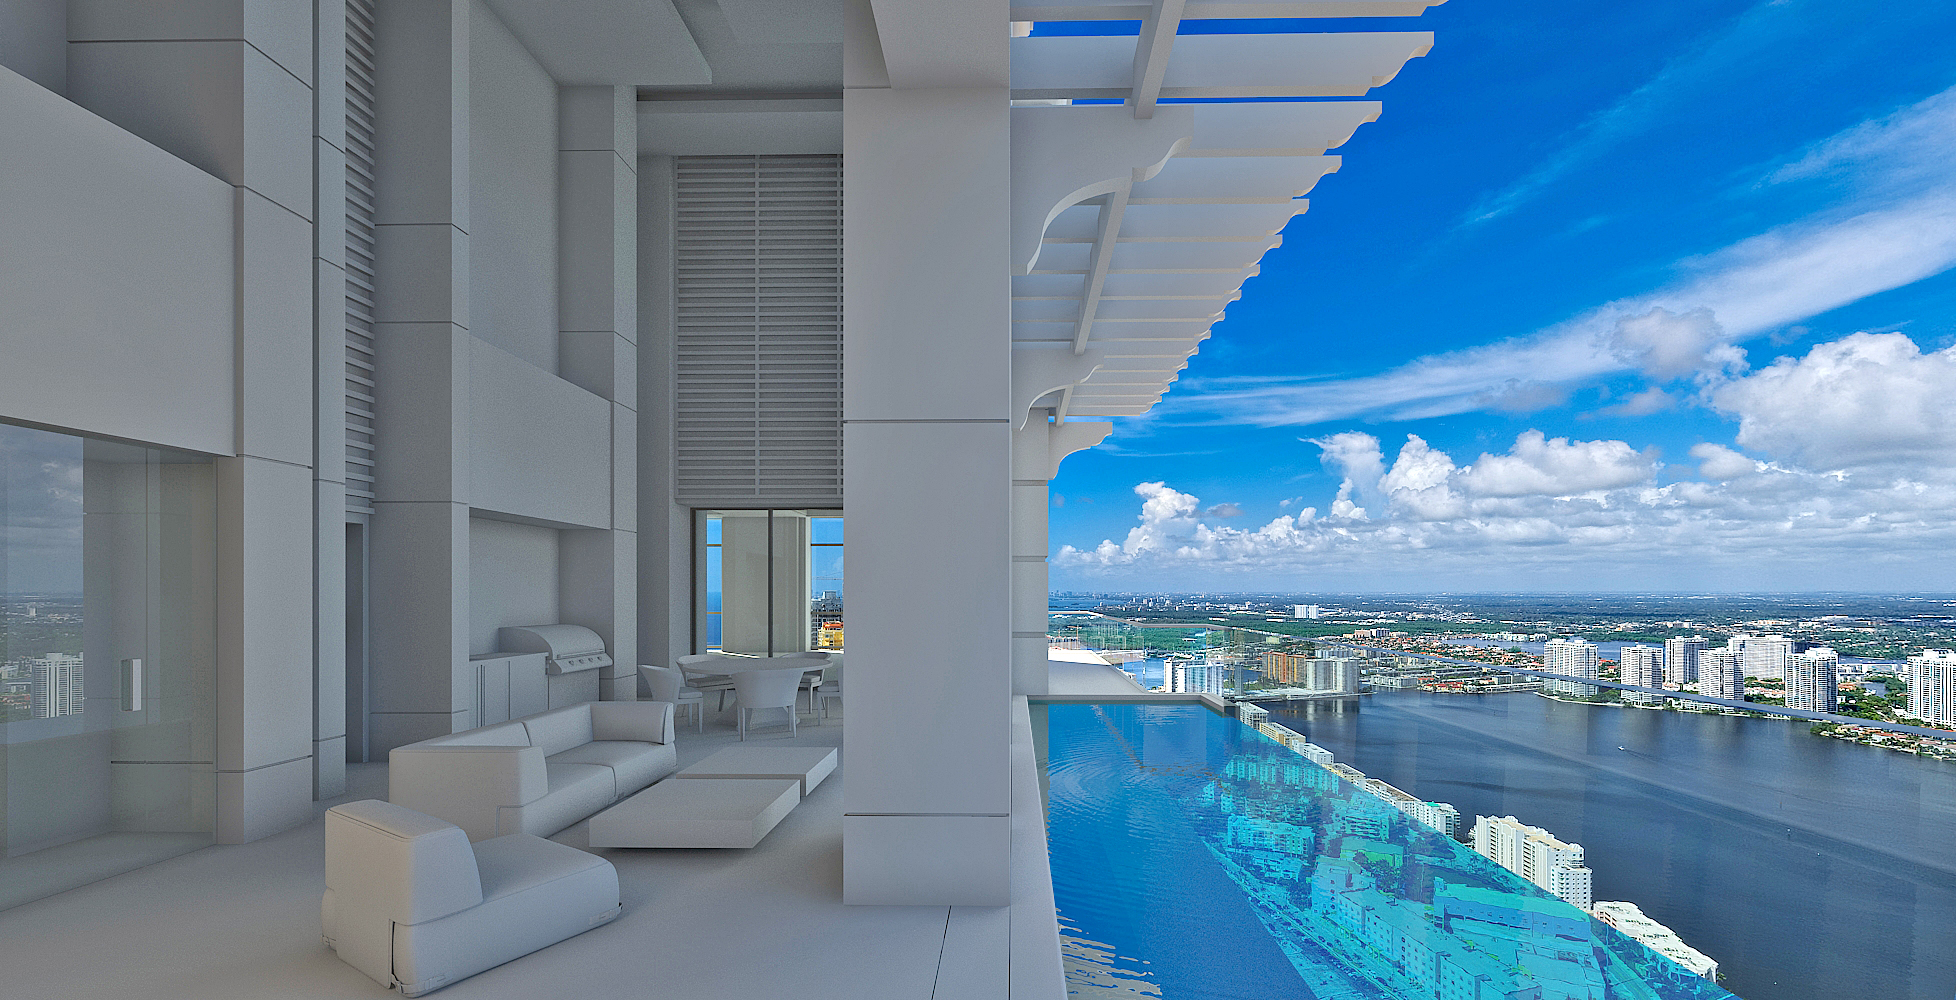 CONDOMINIUMS :  south florida cover image